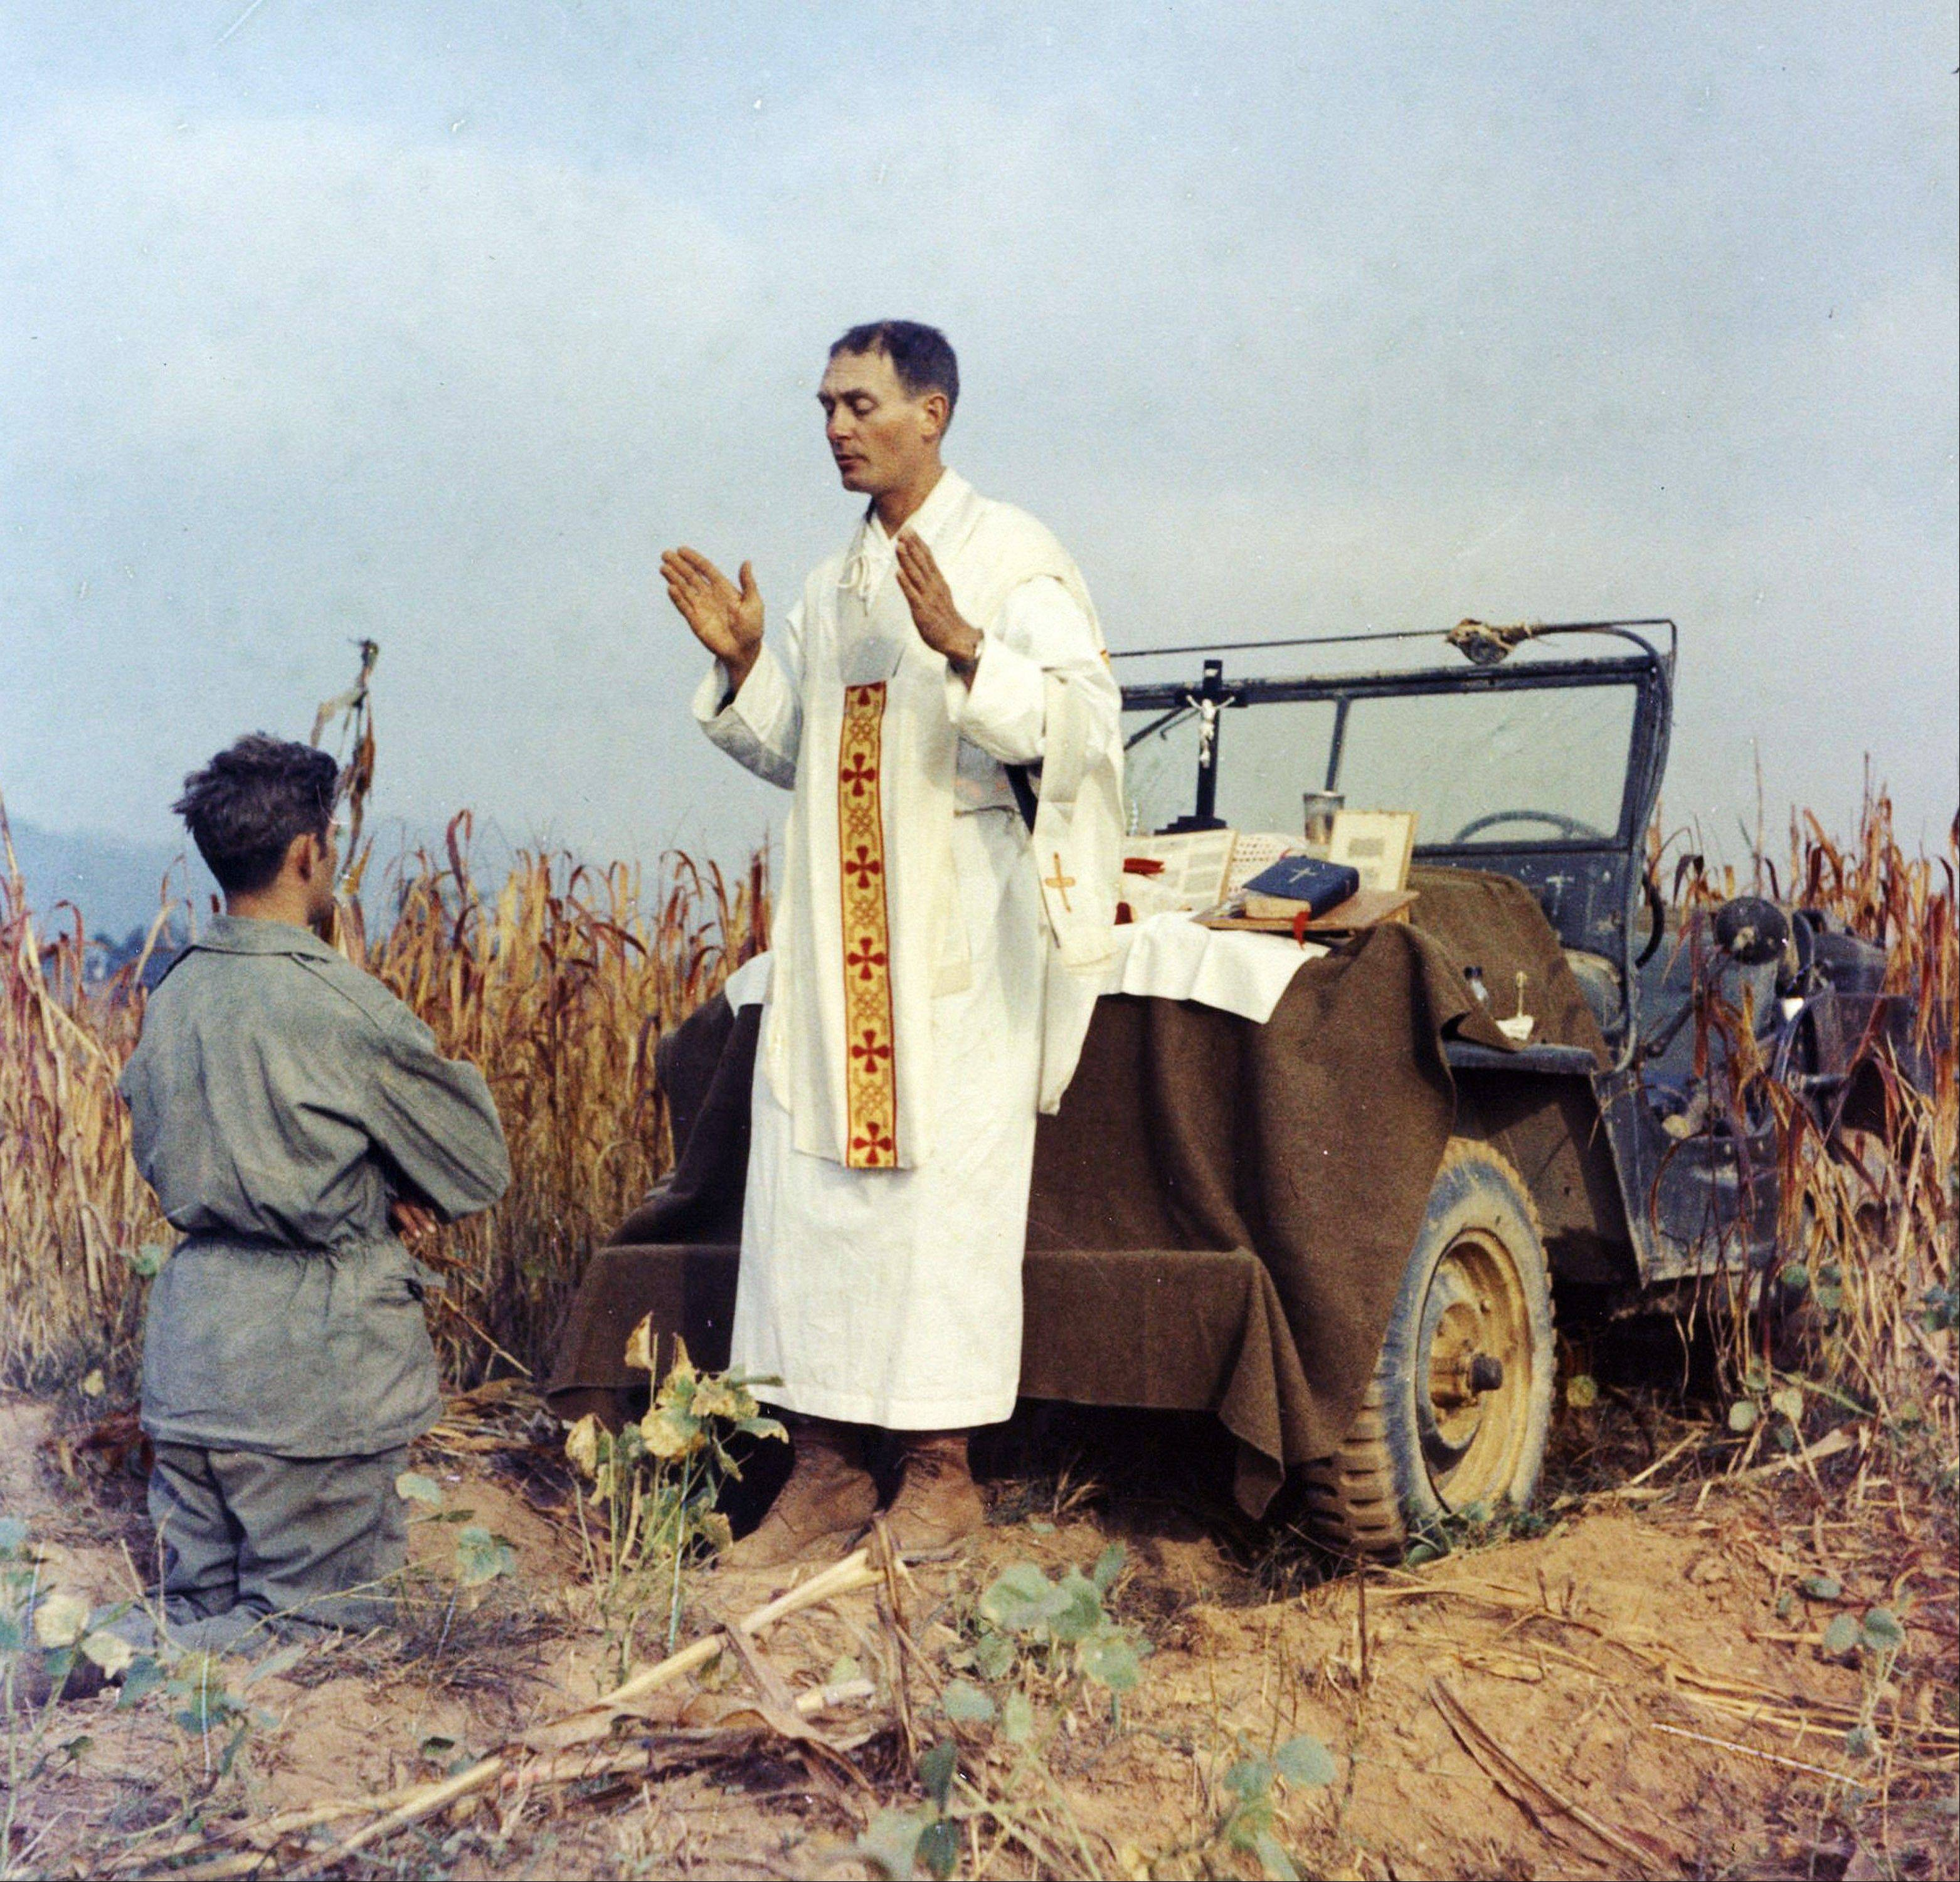 In this photo provided by Col. Raymond A. Skeehan, Father Emil Kapaun celebrates Mass using the hood of his jeep as an altar, as his assistant, Patrick J. Schuler, kneels in prayer in Korea on Oct. 7, 1950, less than a month before Kapaun was taken prisoner. Kapaun died in a prisoner of war camp on May 23, 1951, his body wracked by pneumonia and dysentery. On April 11, 2013, President Barack Obama will award the legendary chaplain, credited with saving hundreds of soldiers during the Korean War, the Medal of Honor posthumously.